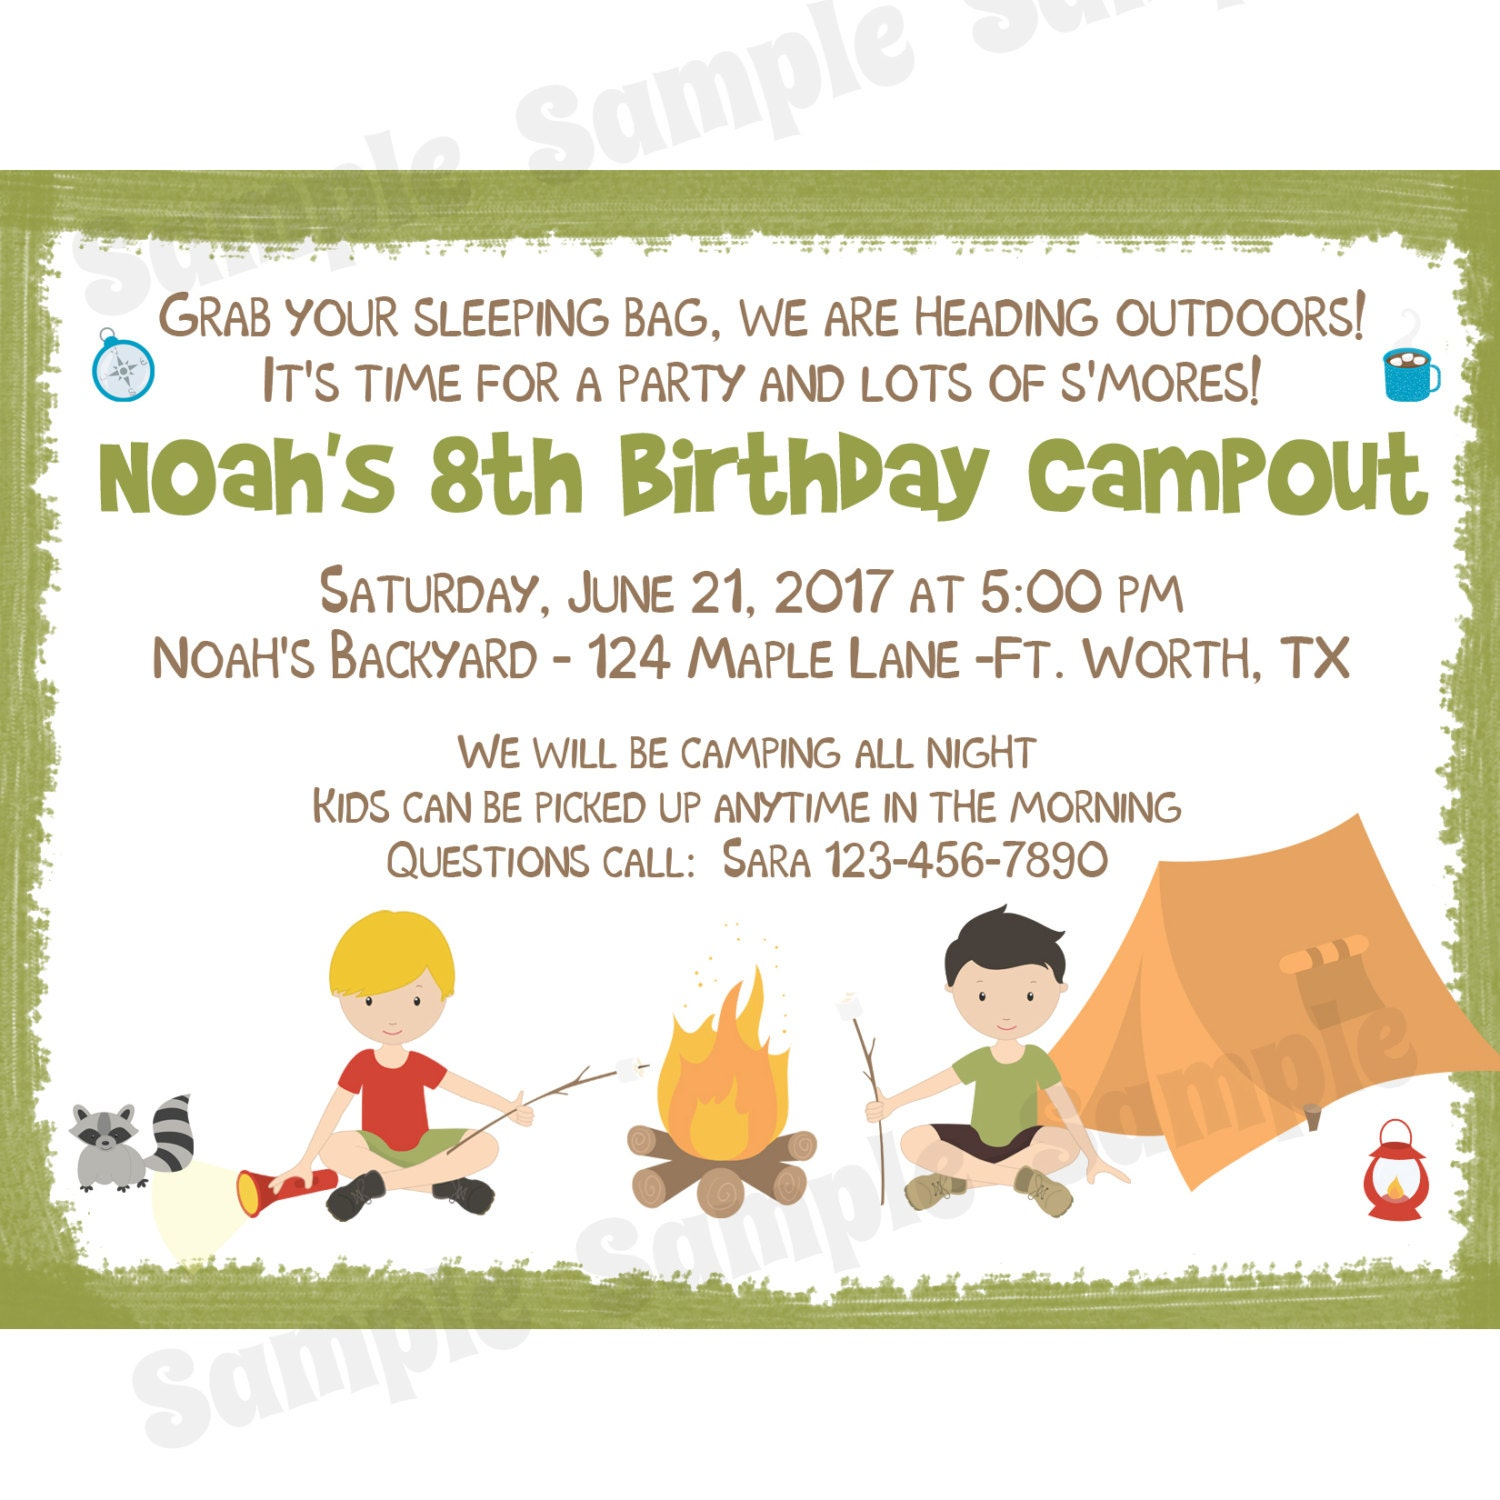 20 Personalized Birthday Invitations - Camping Party - Backyard ...